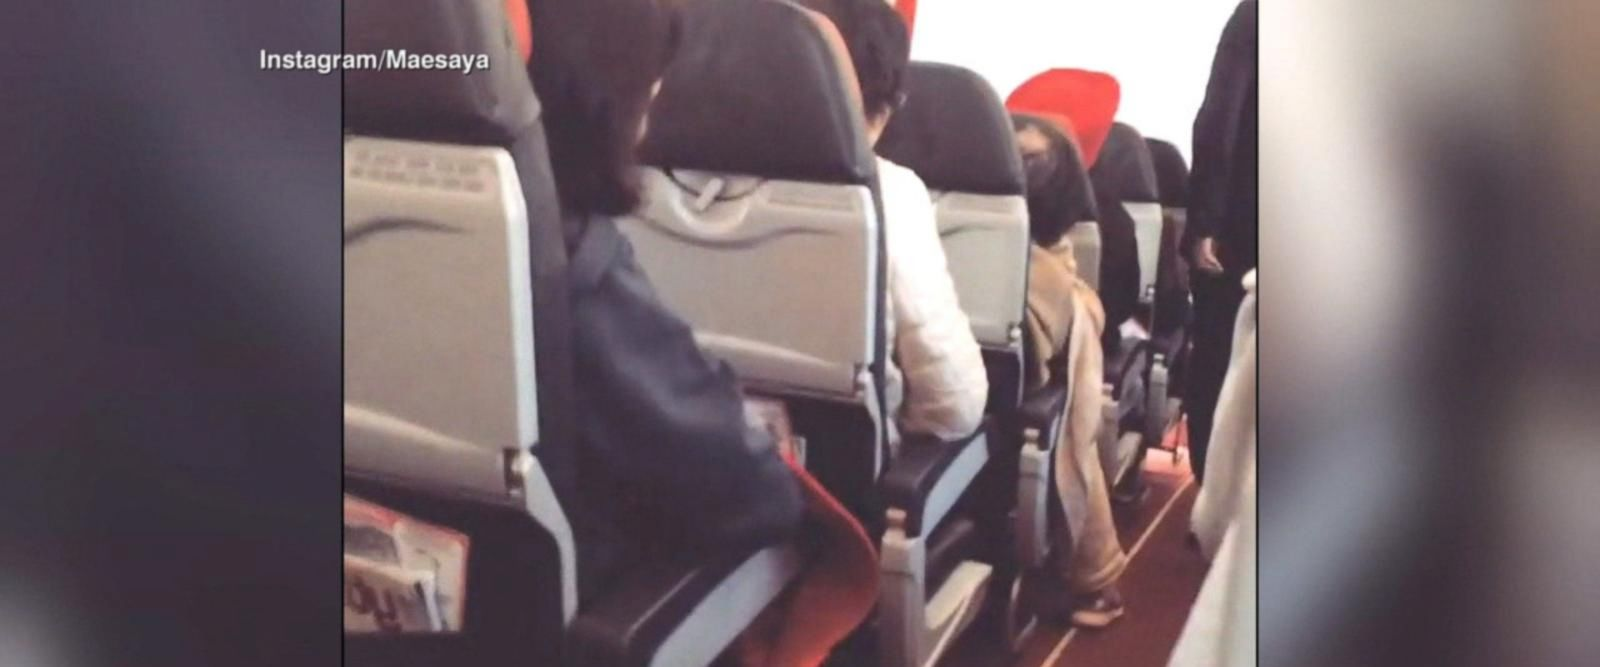 VIDEO: Video shows extreme turbulence on AirAsia flight